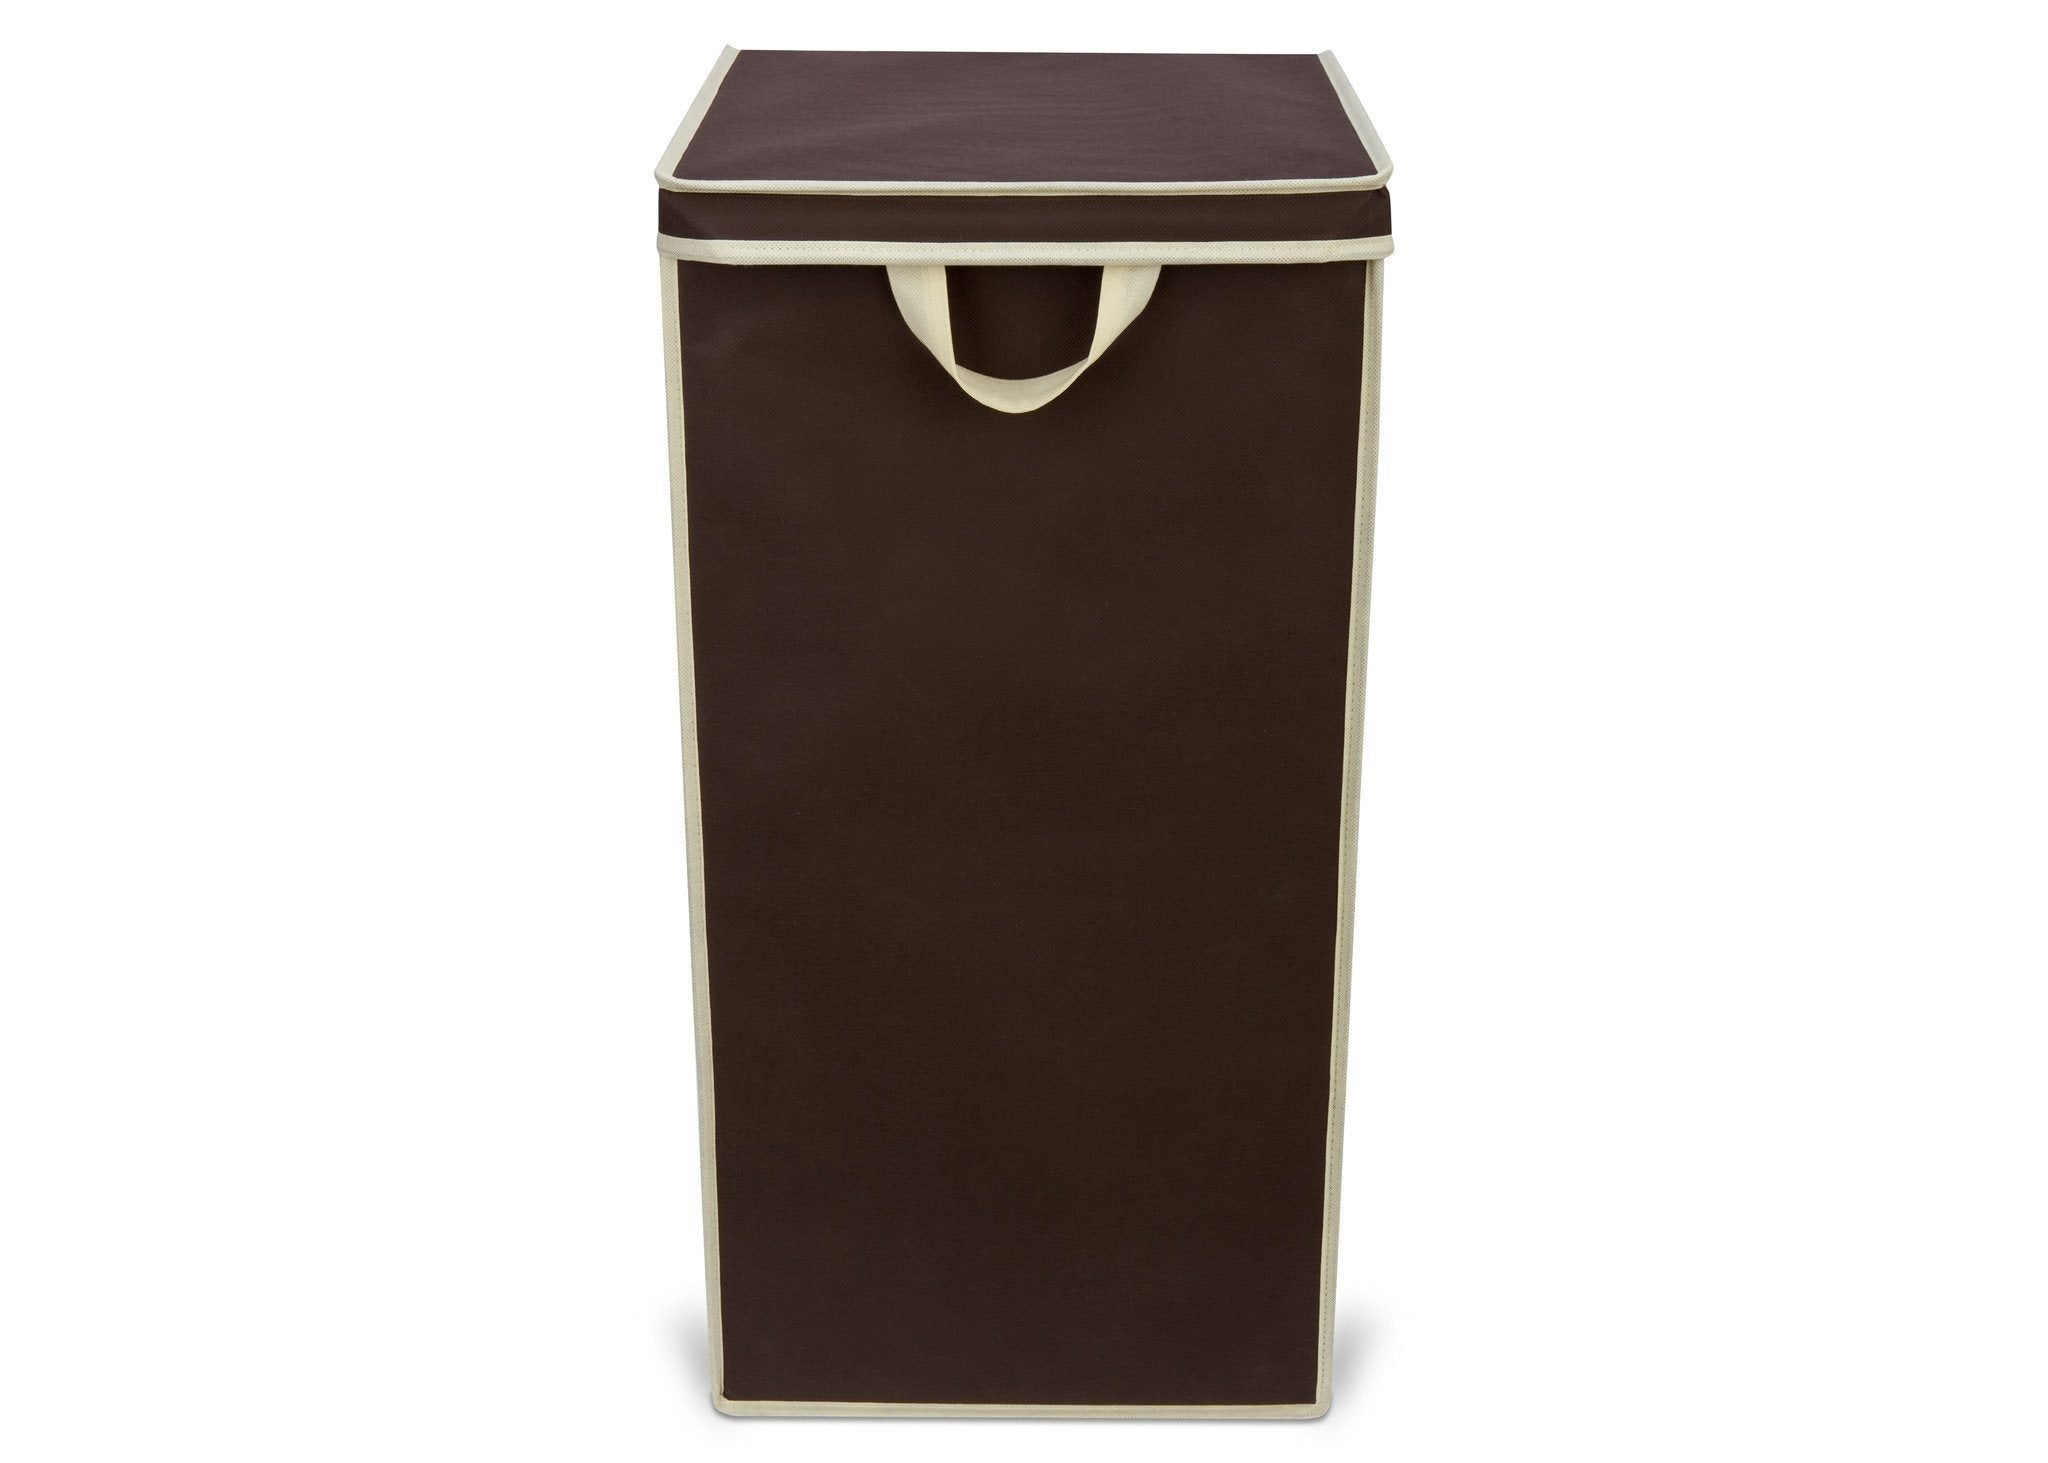 Delta Childern Chocolate (204) Tall Hamper, Front View a2a